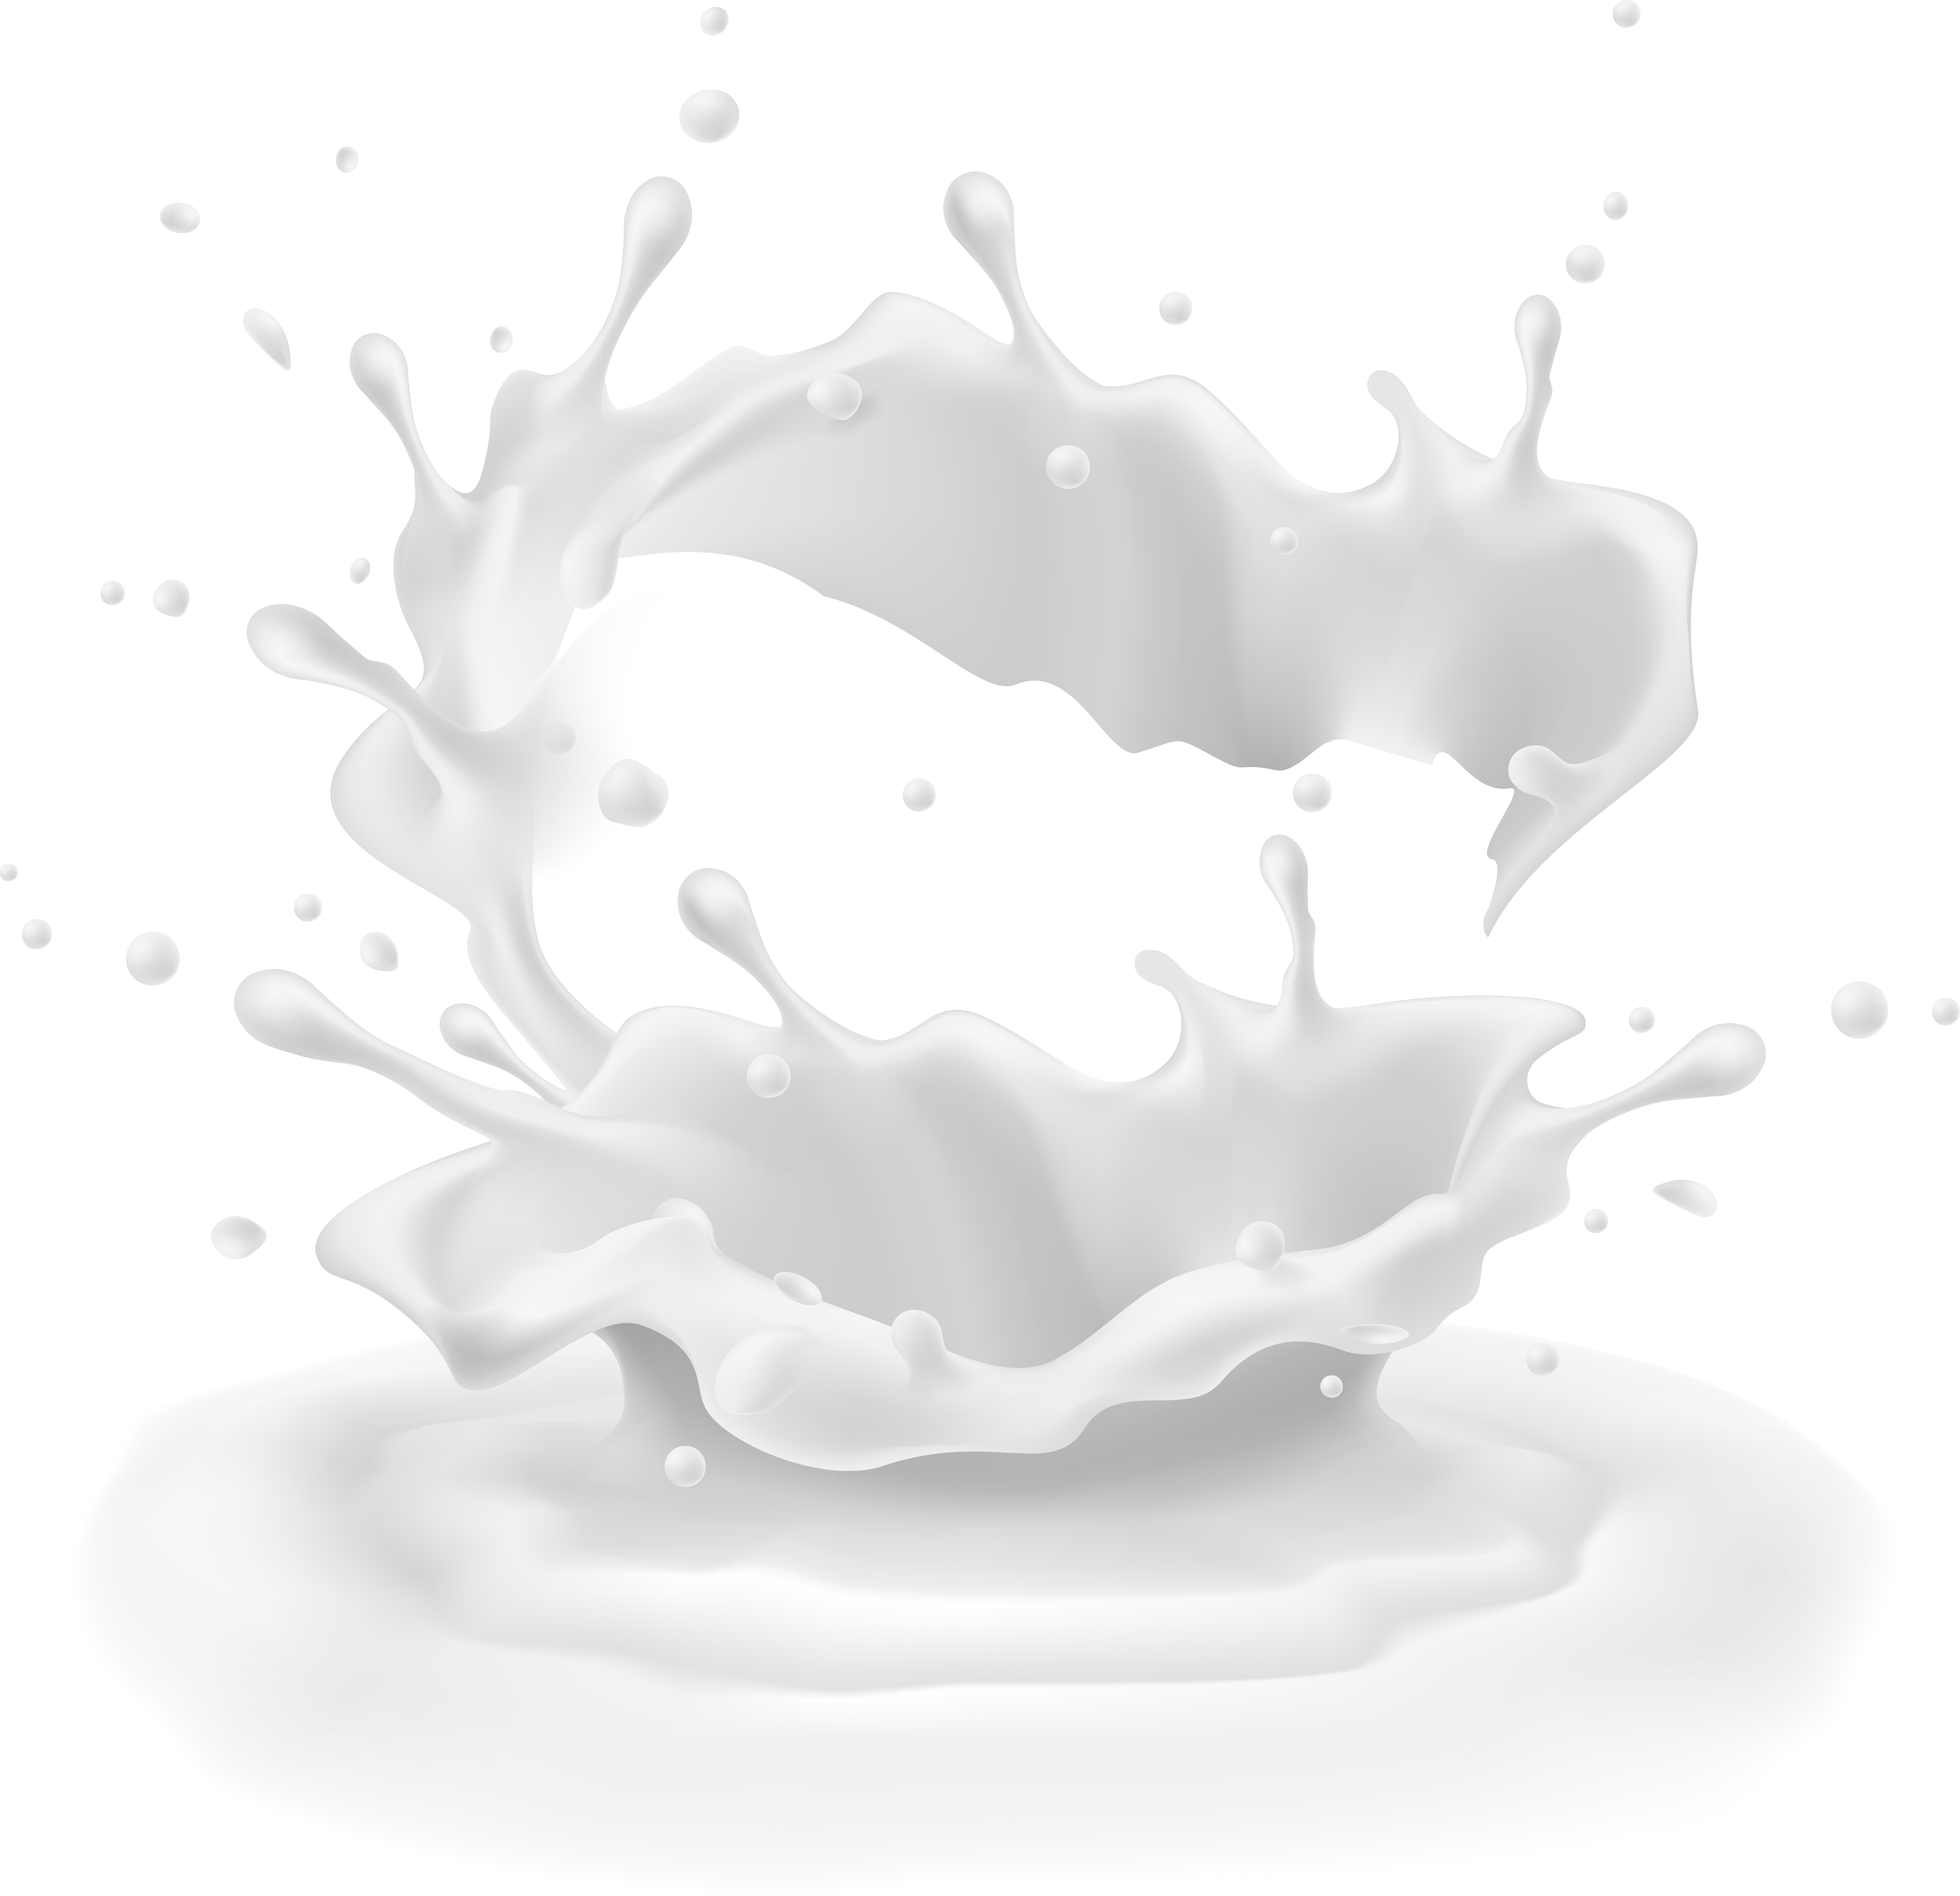 Cup Wallpaper Encapsulated Postscript Computer Milk PNG Image